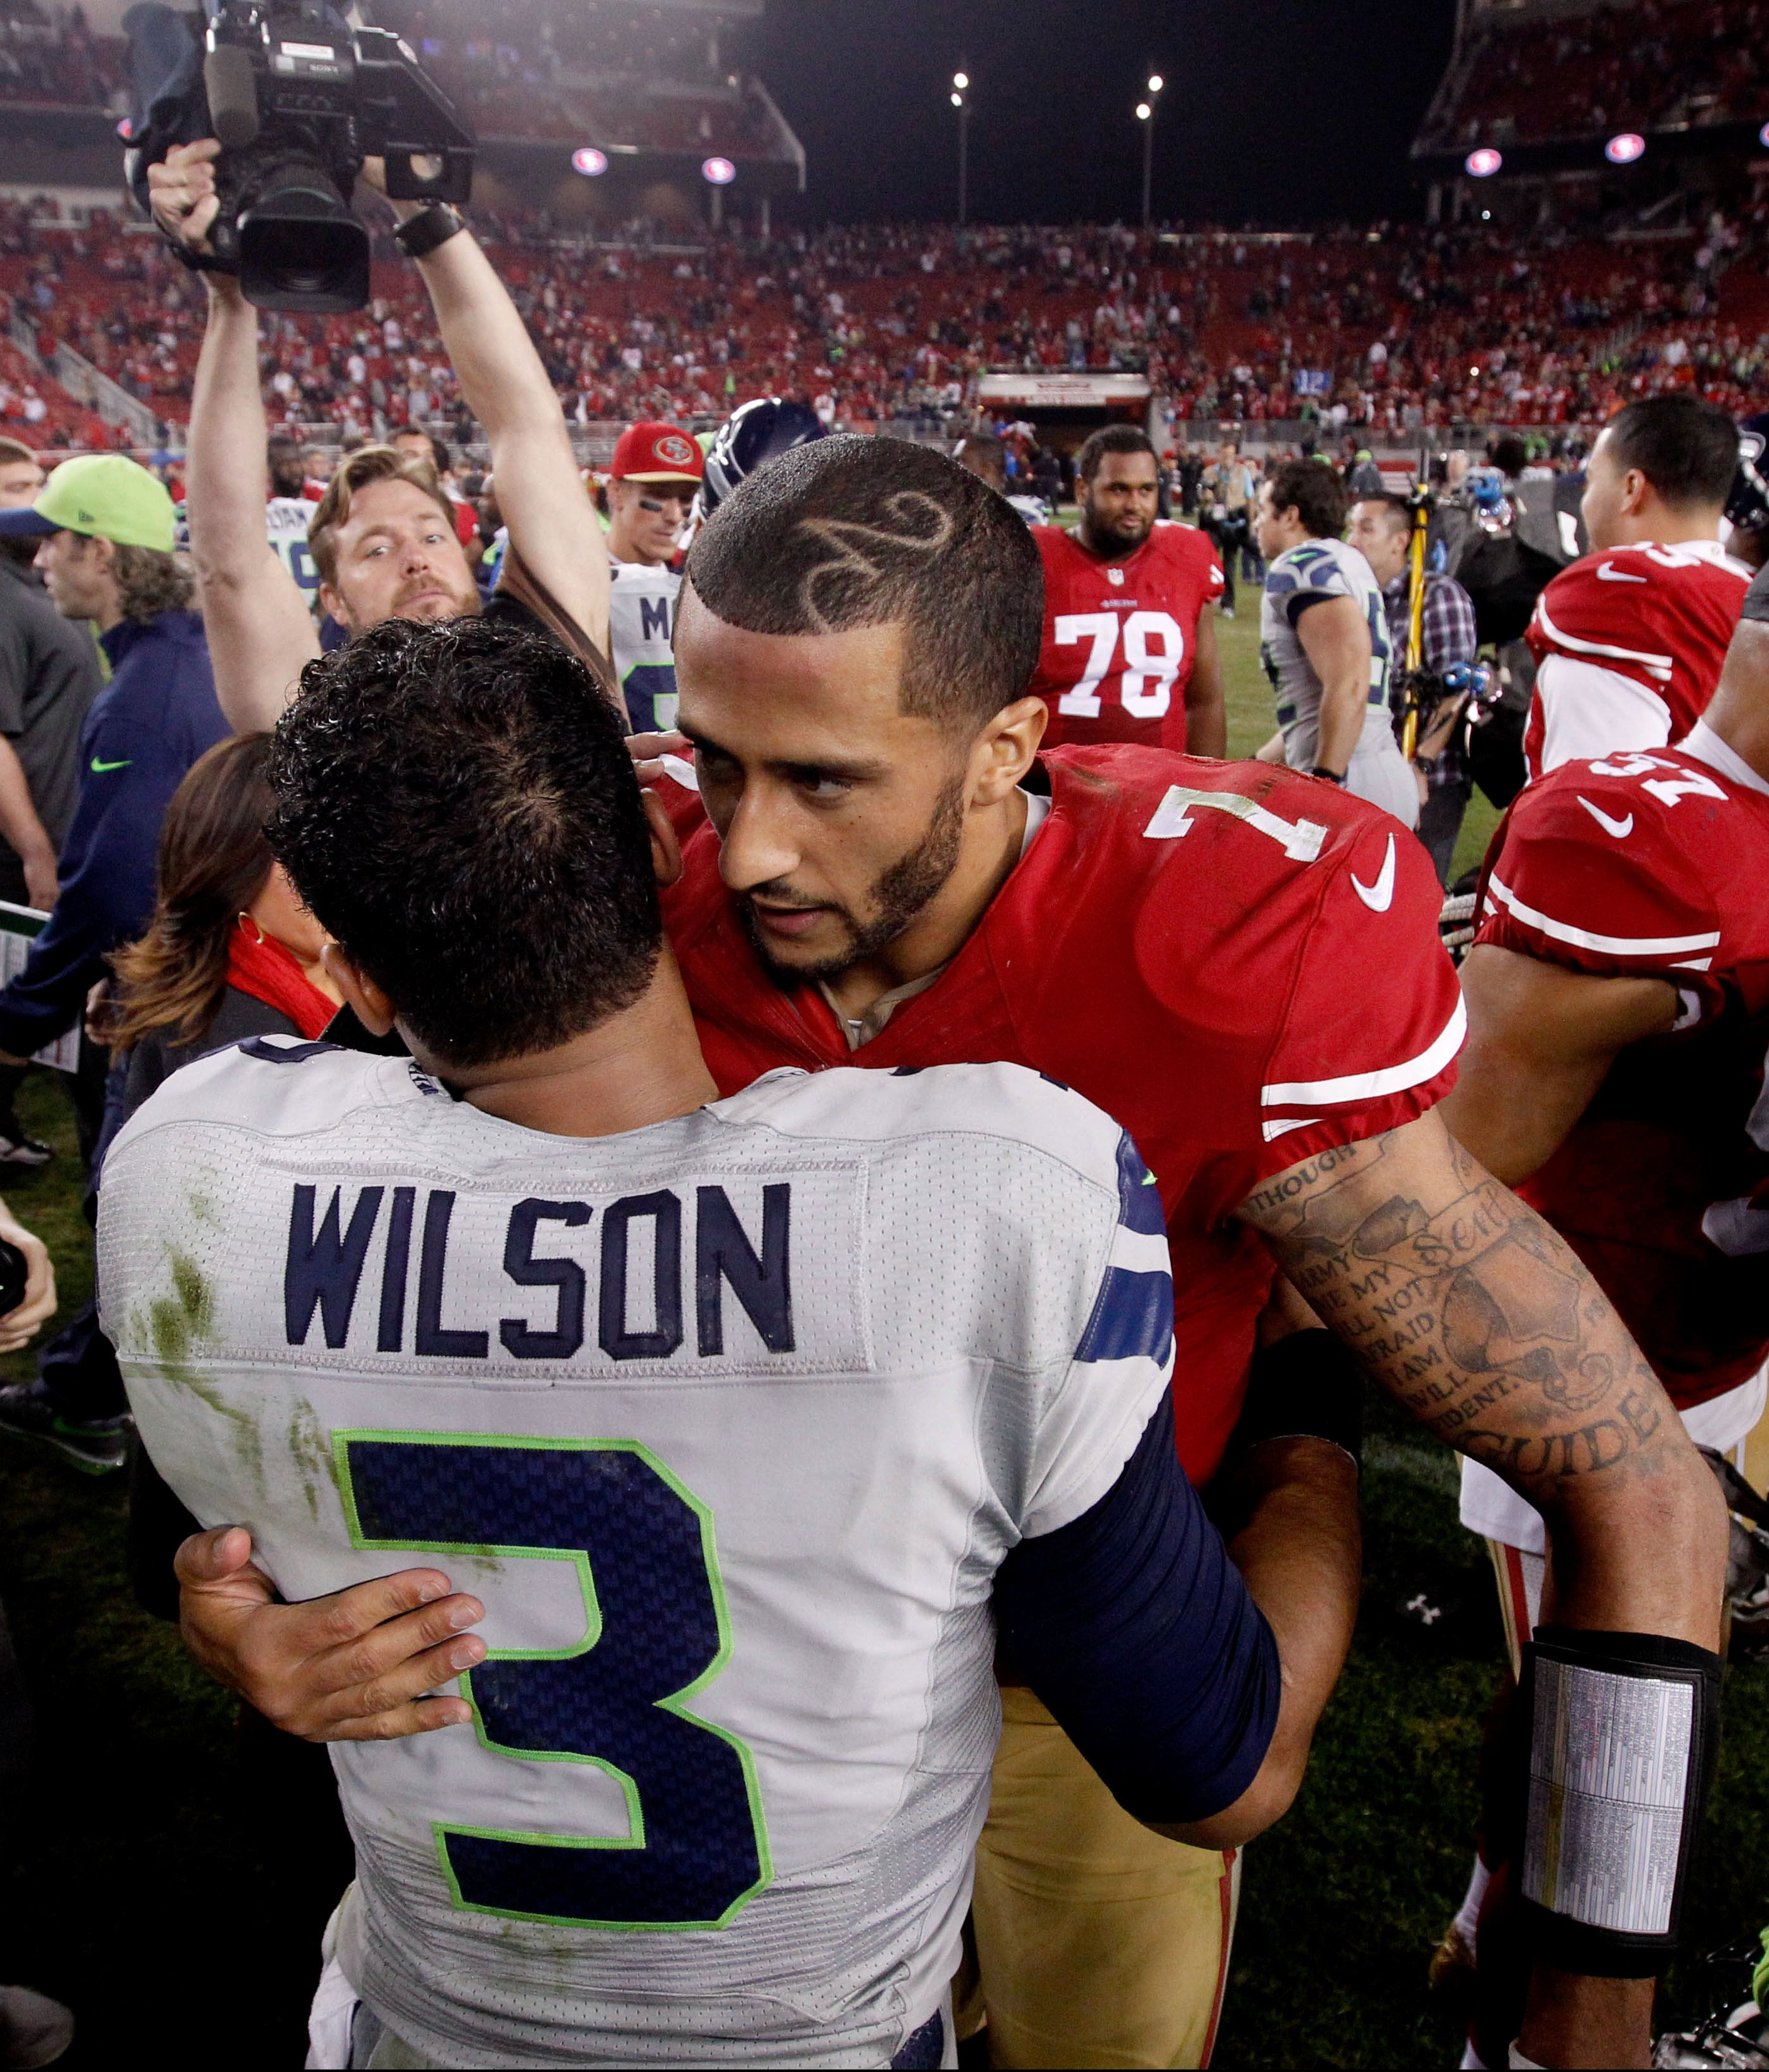 Colin kaepernick to seahawks likely to happen to meet with colin kaepernick this offseason about a potential roster spot and the latest coming out of the league is pointing the former 49ers starter m4hsunfo